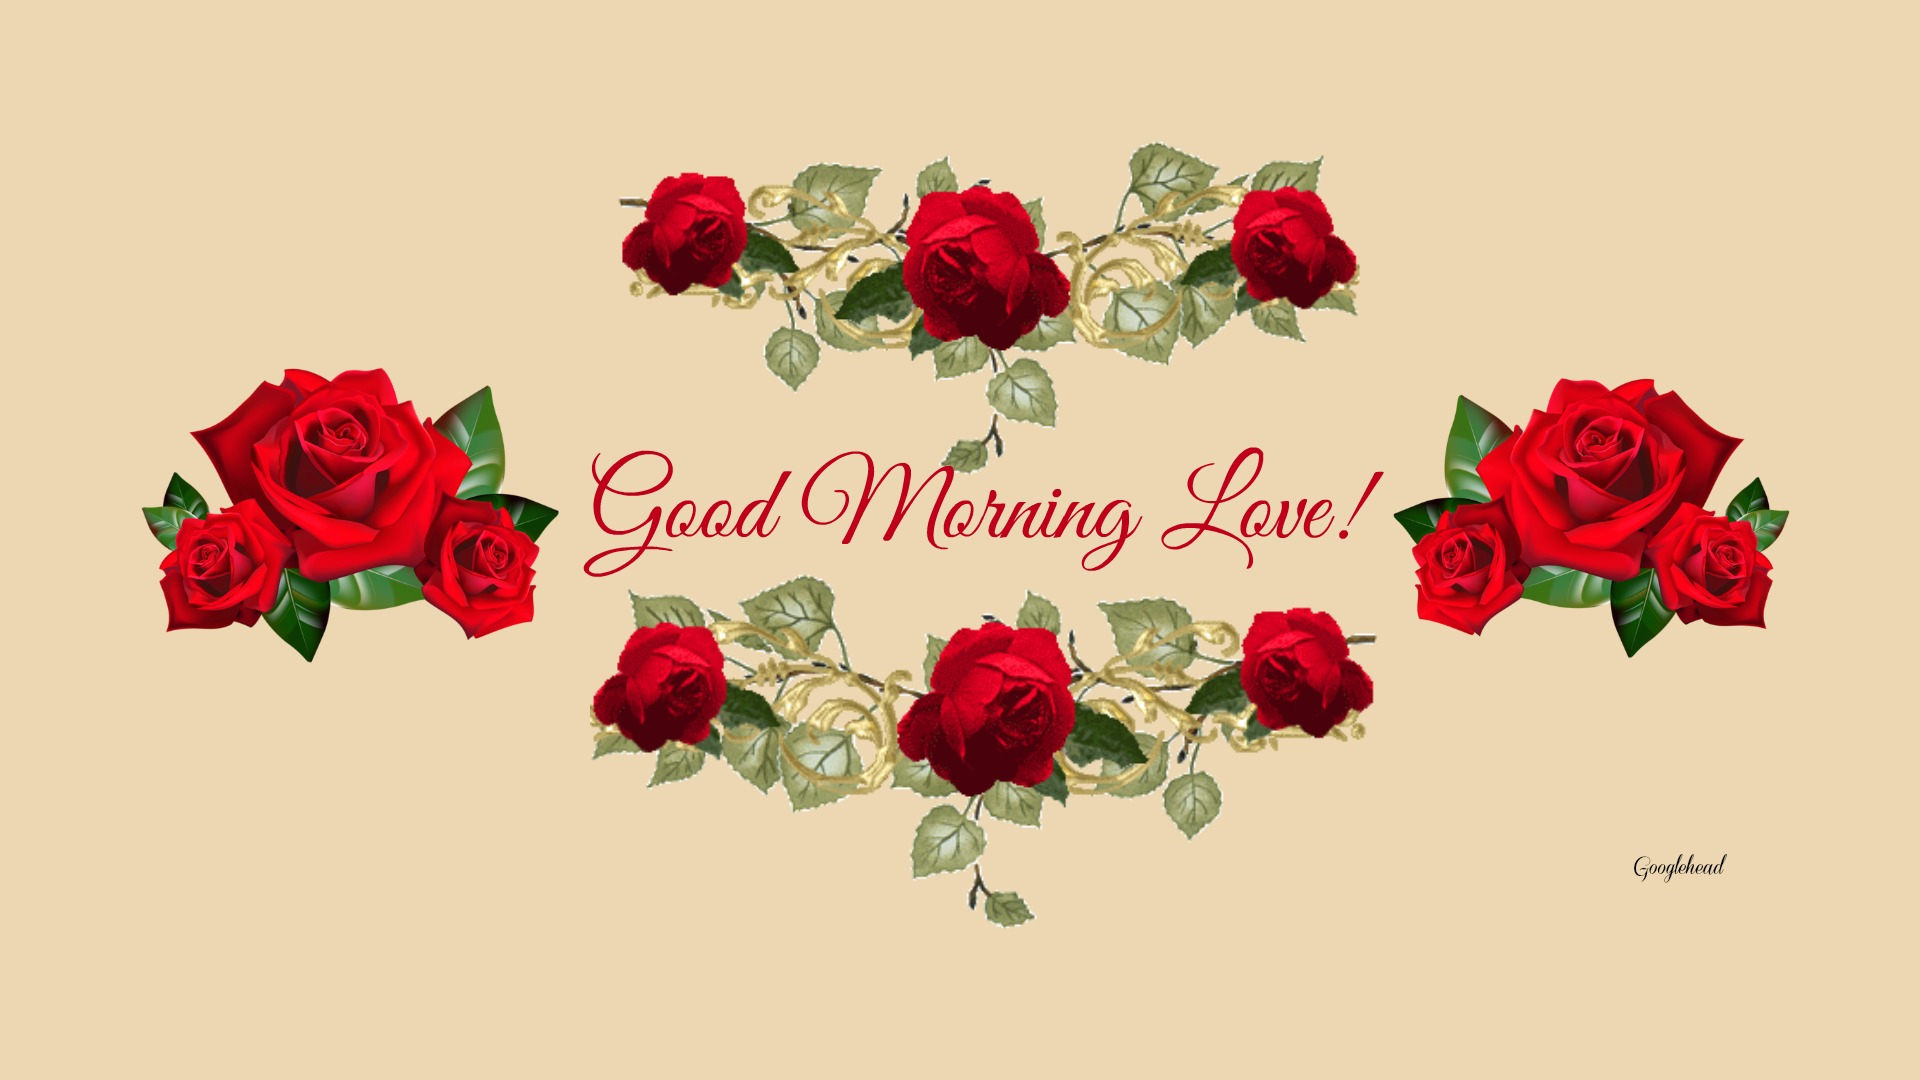 Good Morning My Sweet Love Hd Wallpaper : Good Morning wallpapers, Pictures, Images